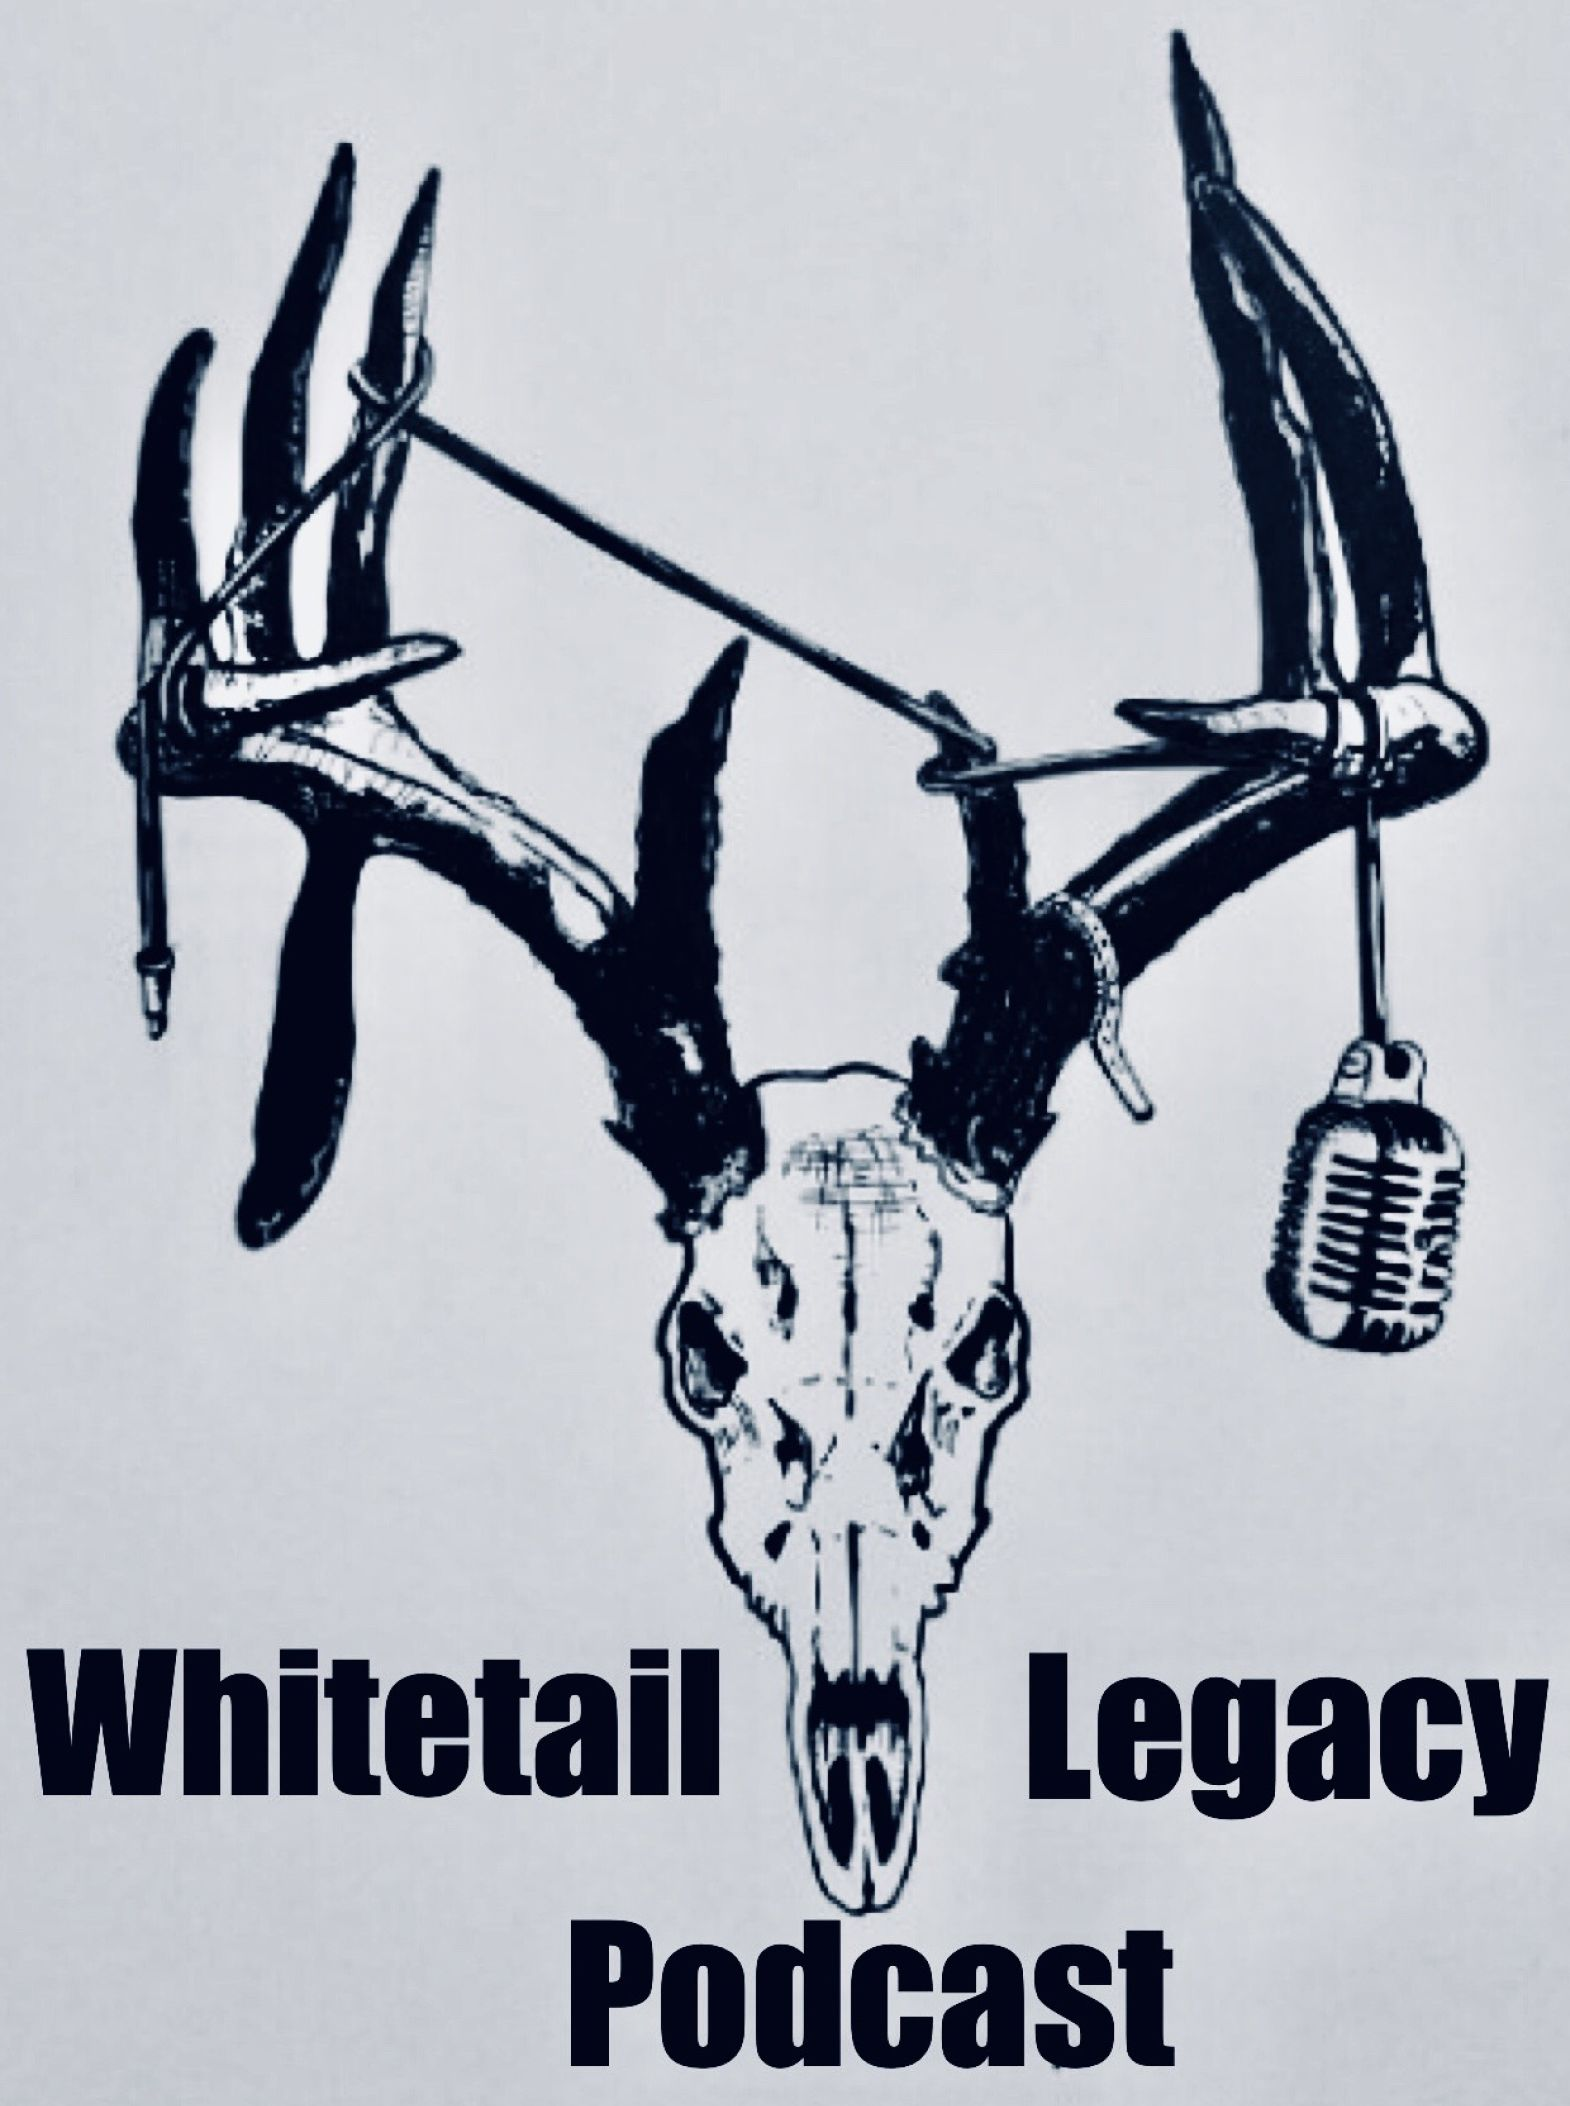 Whitetail Legacy Podcast show art